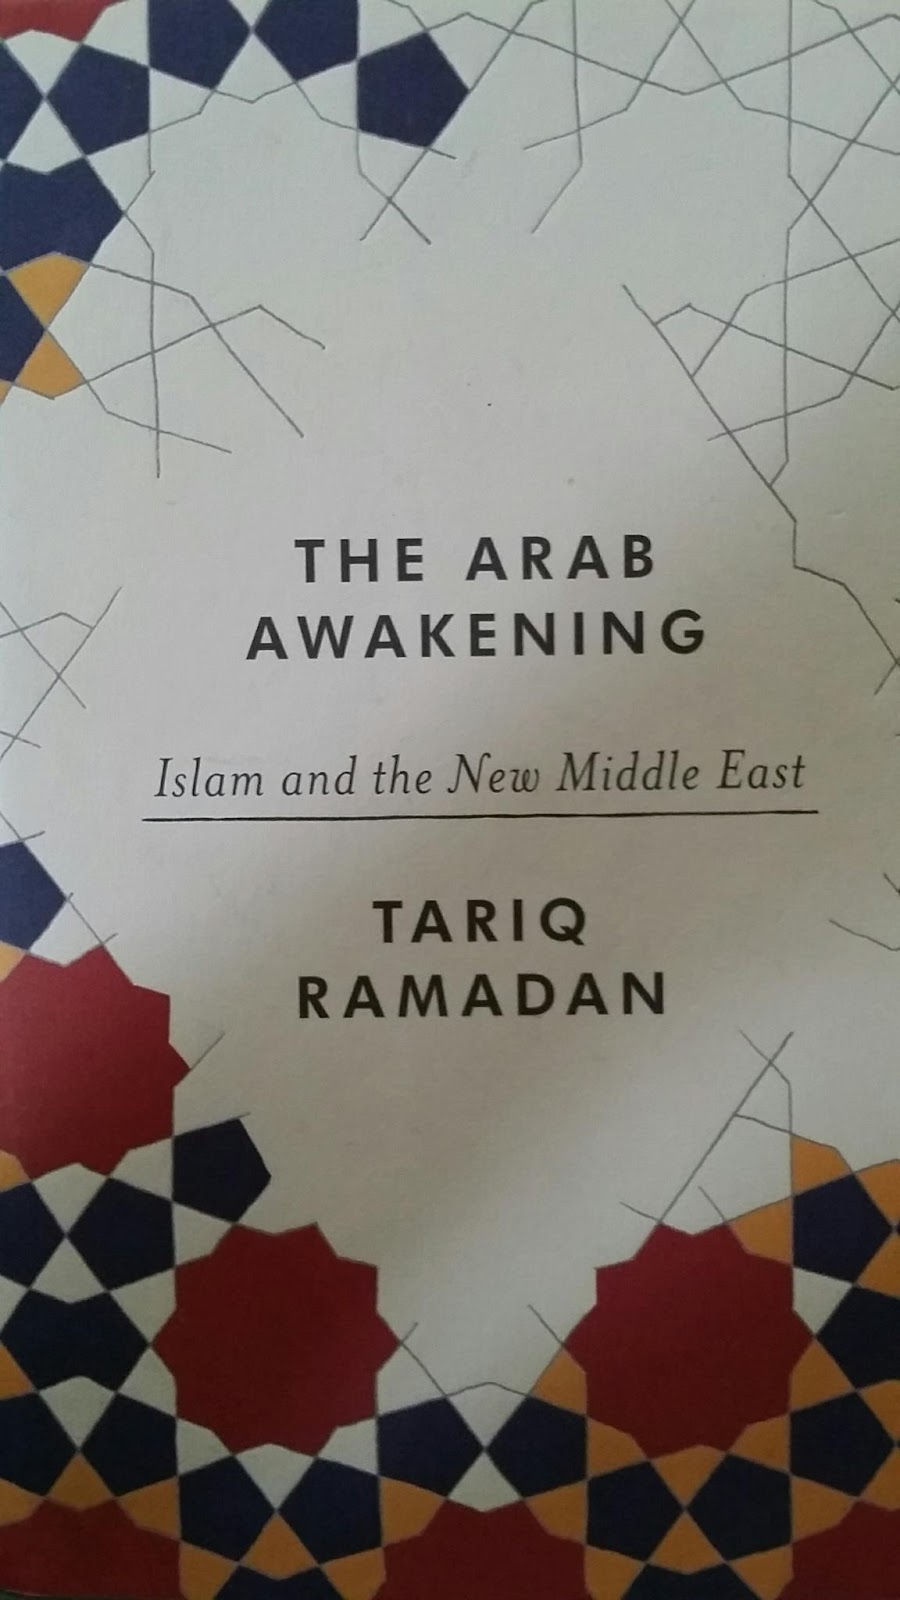 ISLAM AND ARAB AWAKENING EBOOK